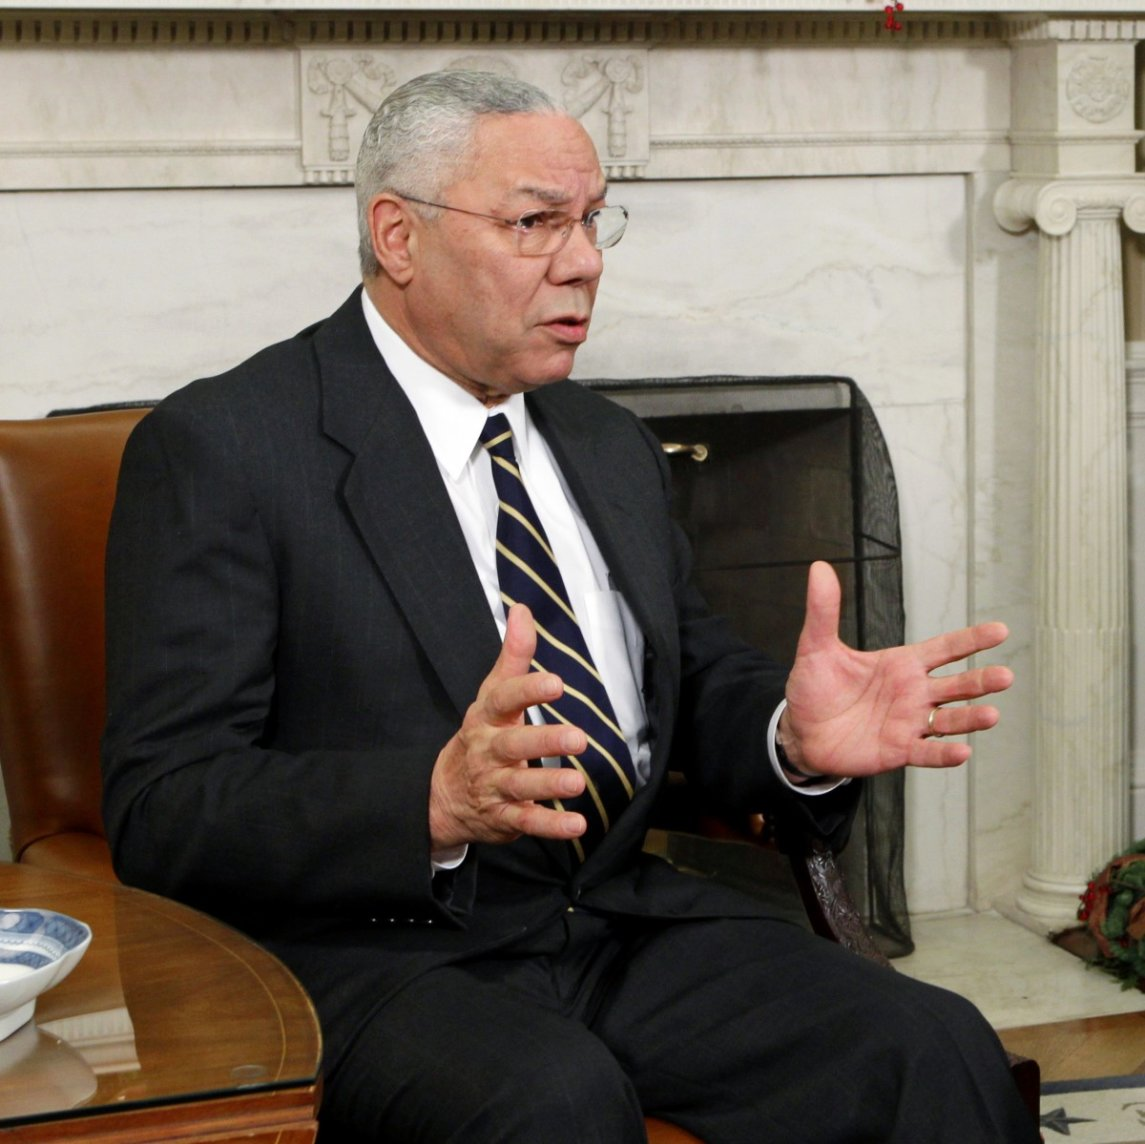 Autonomy, Centrism And Compromise: The Politics Of Colin Powell